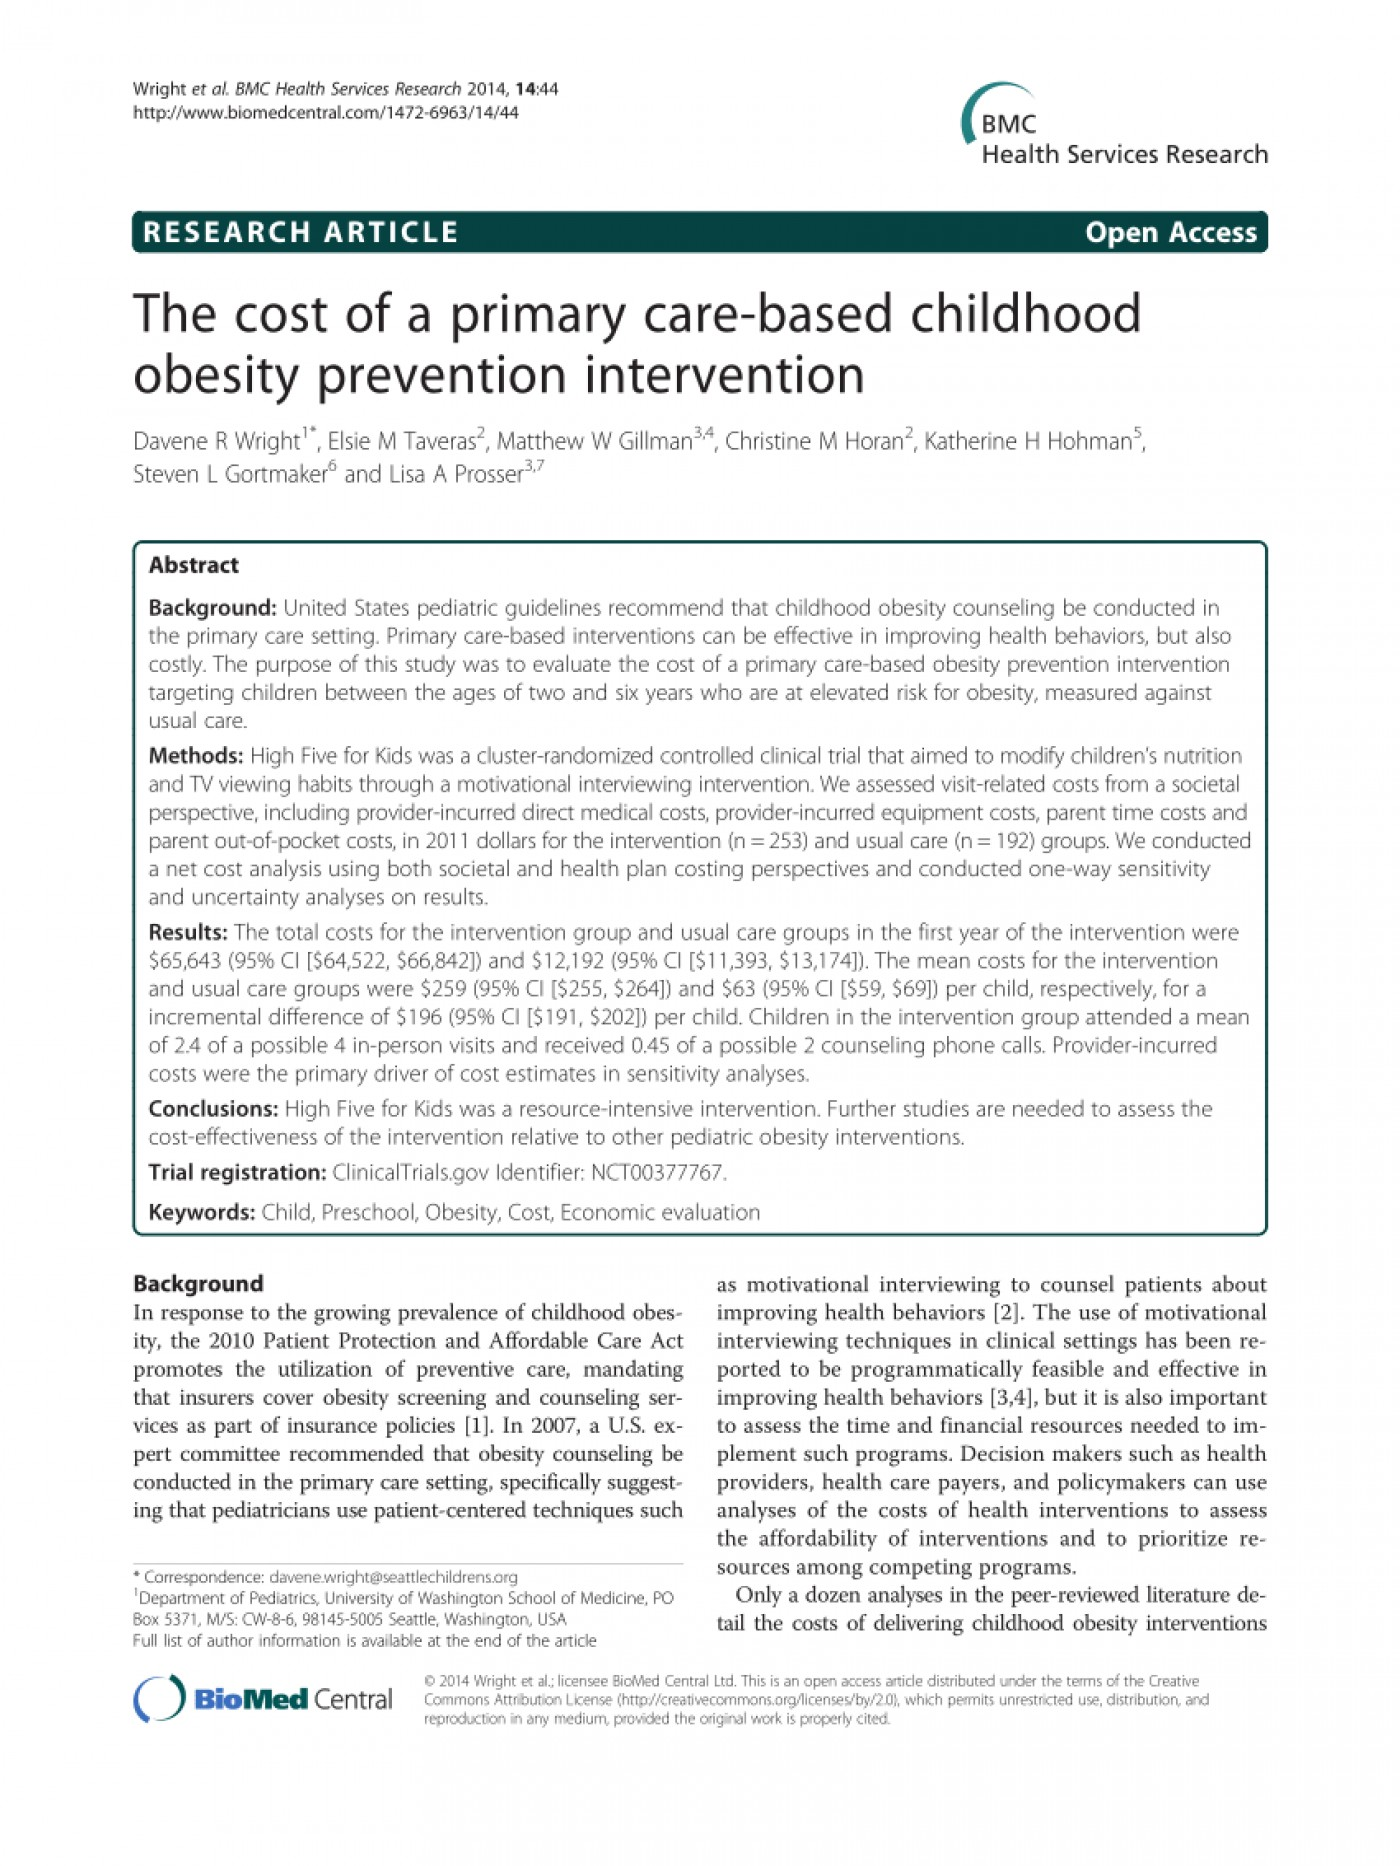 003 Primary Research Article On Childhood Obesity Paper Imposing 1400